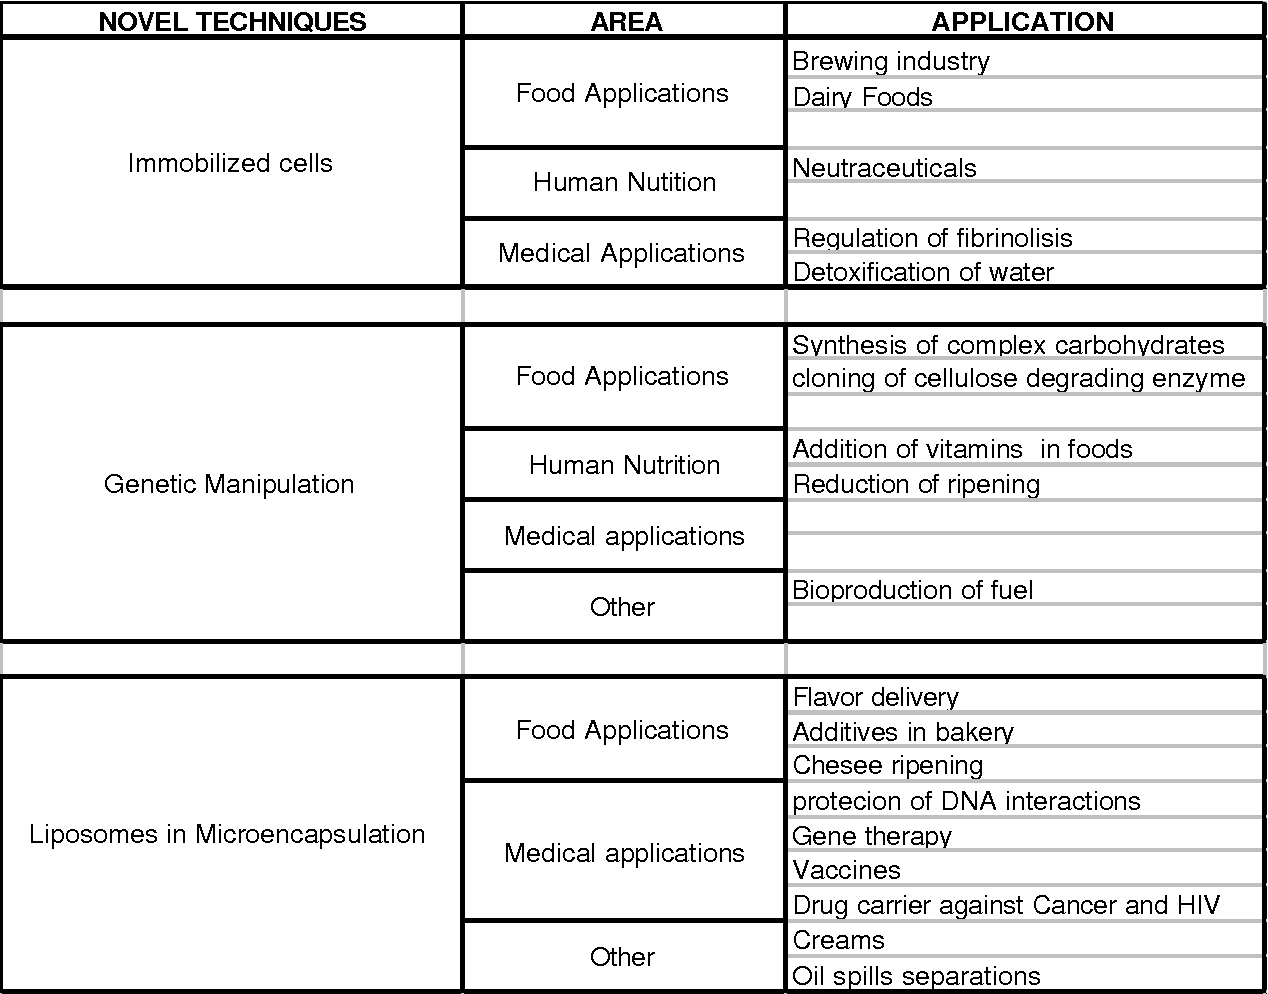 Table 8. Selected Biotechnology Tools and Their Applications